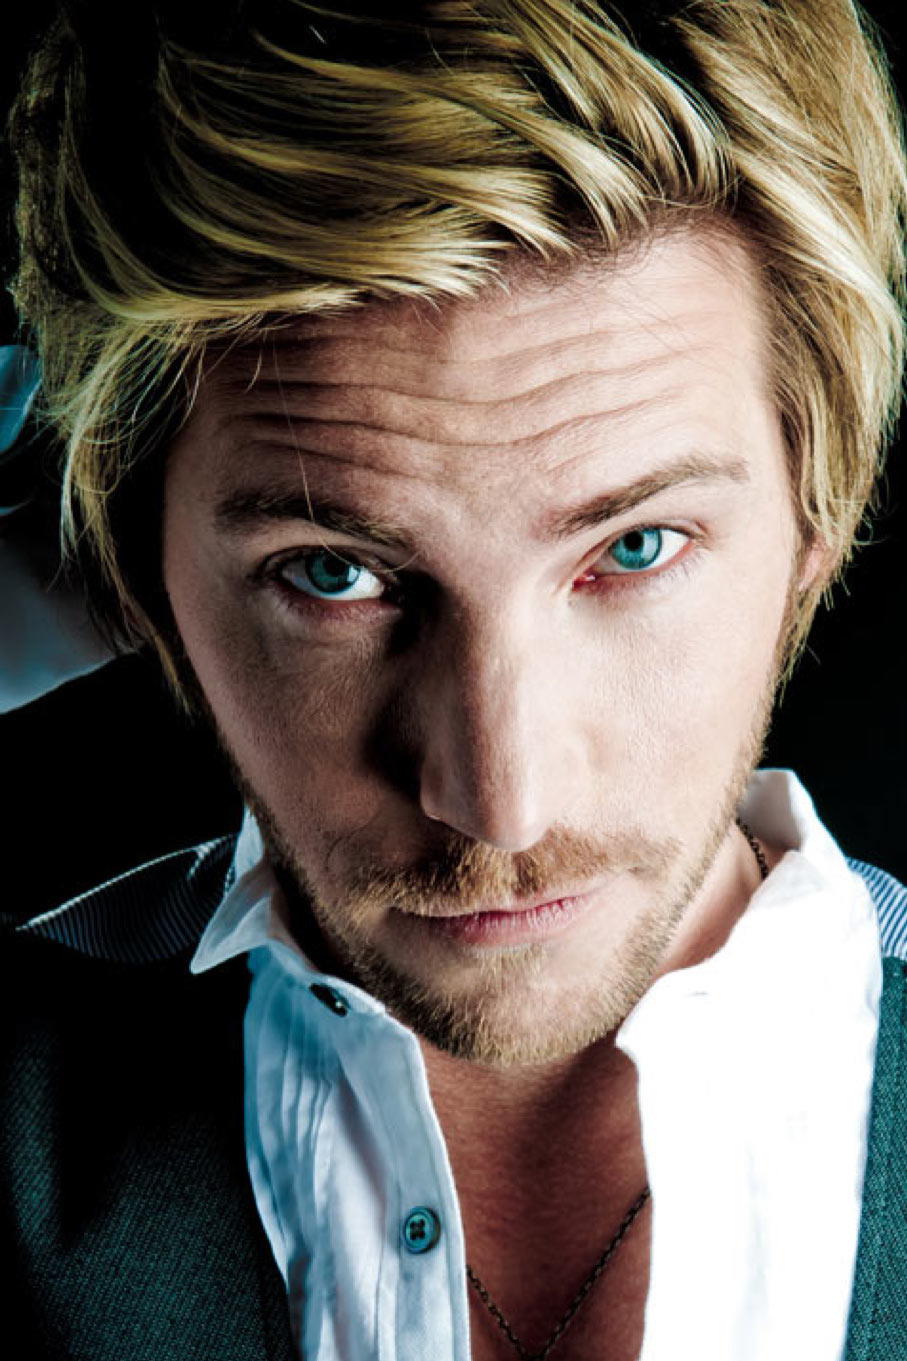 troy baker mass effect